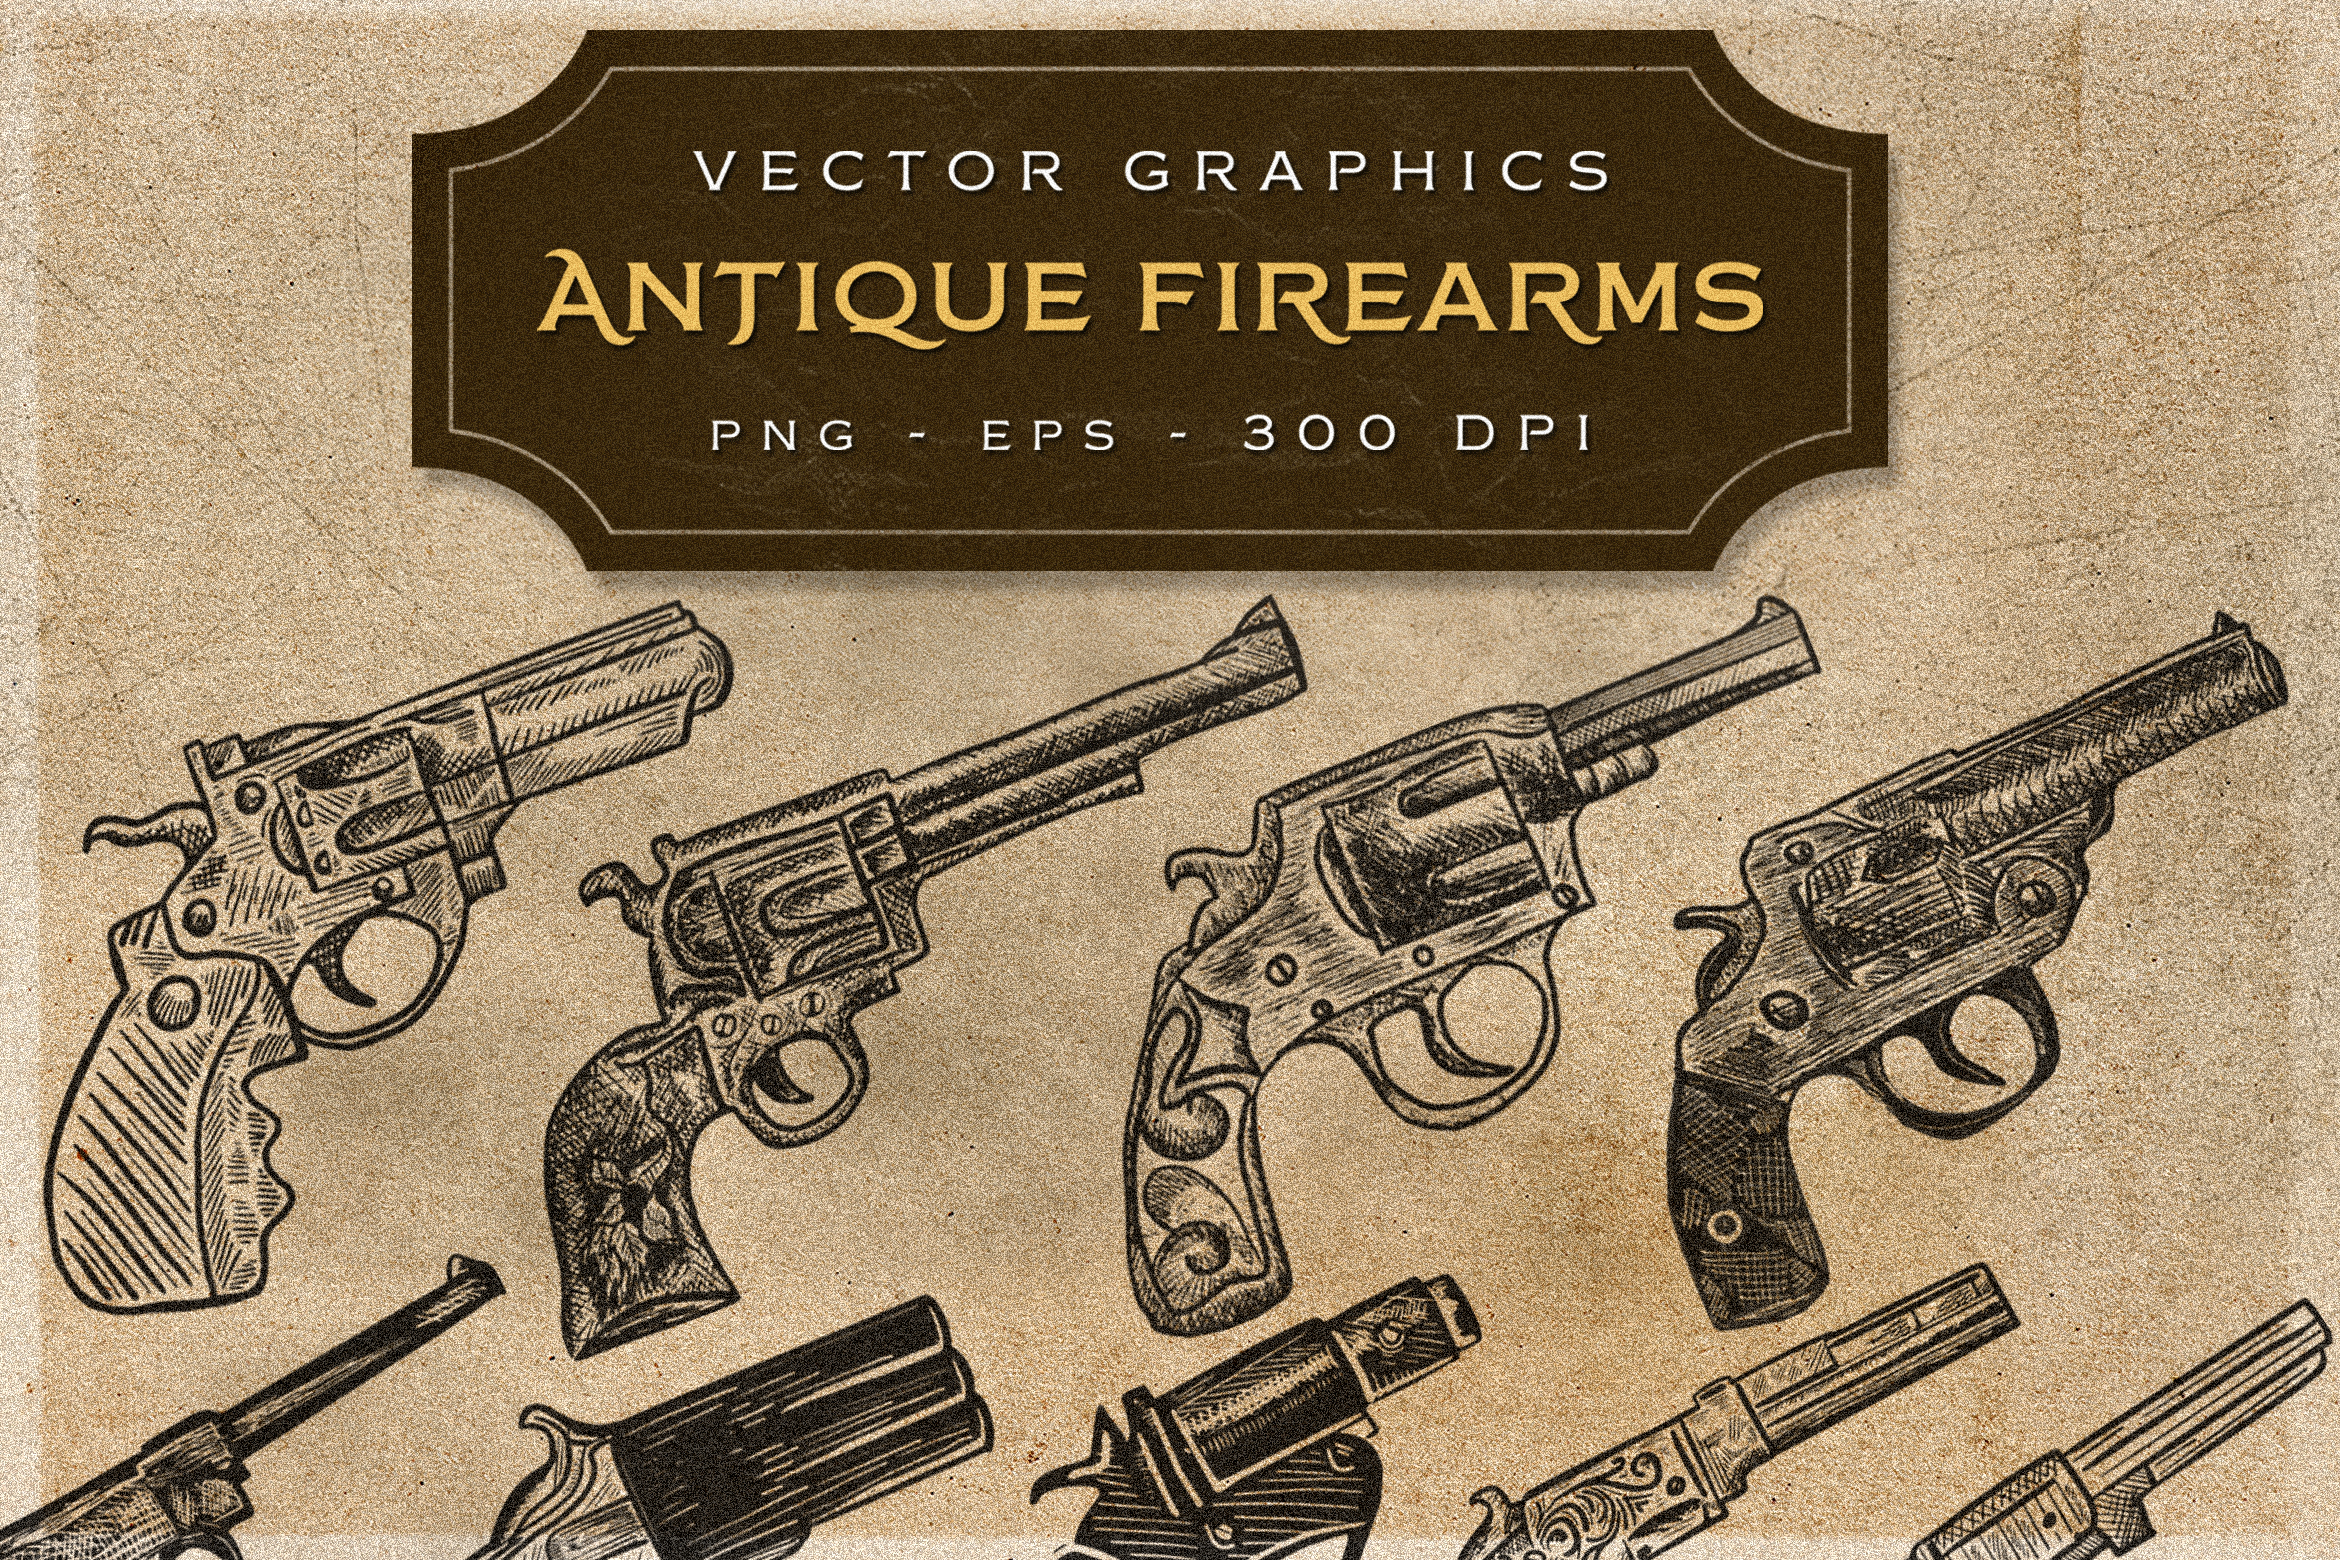 ANTIQUE FIREARMS - Vintage Graphics Graphic Illustrations By storictype